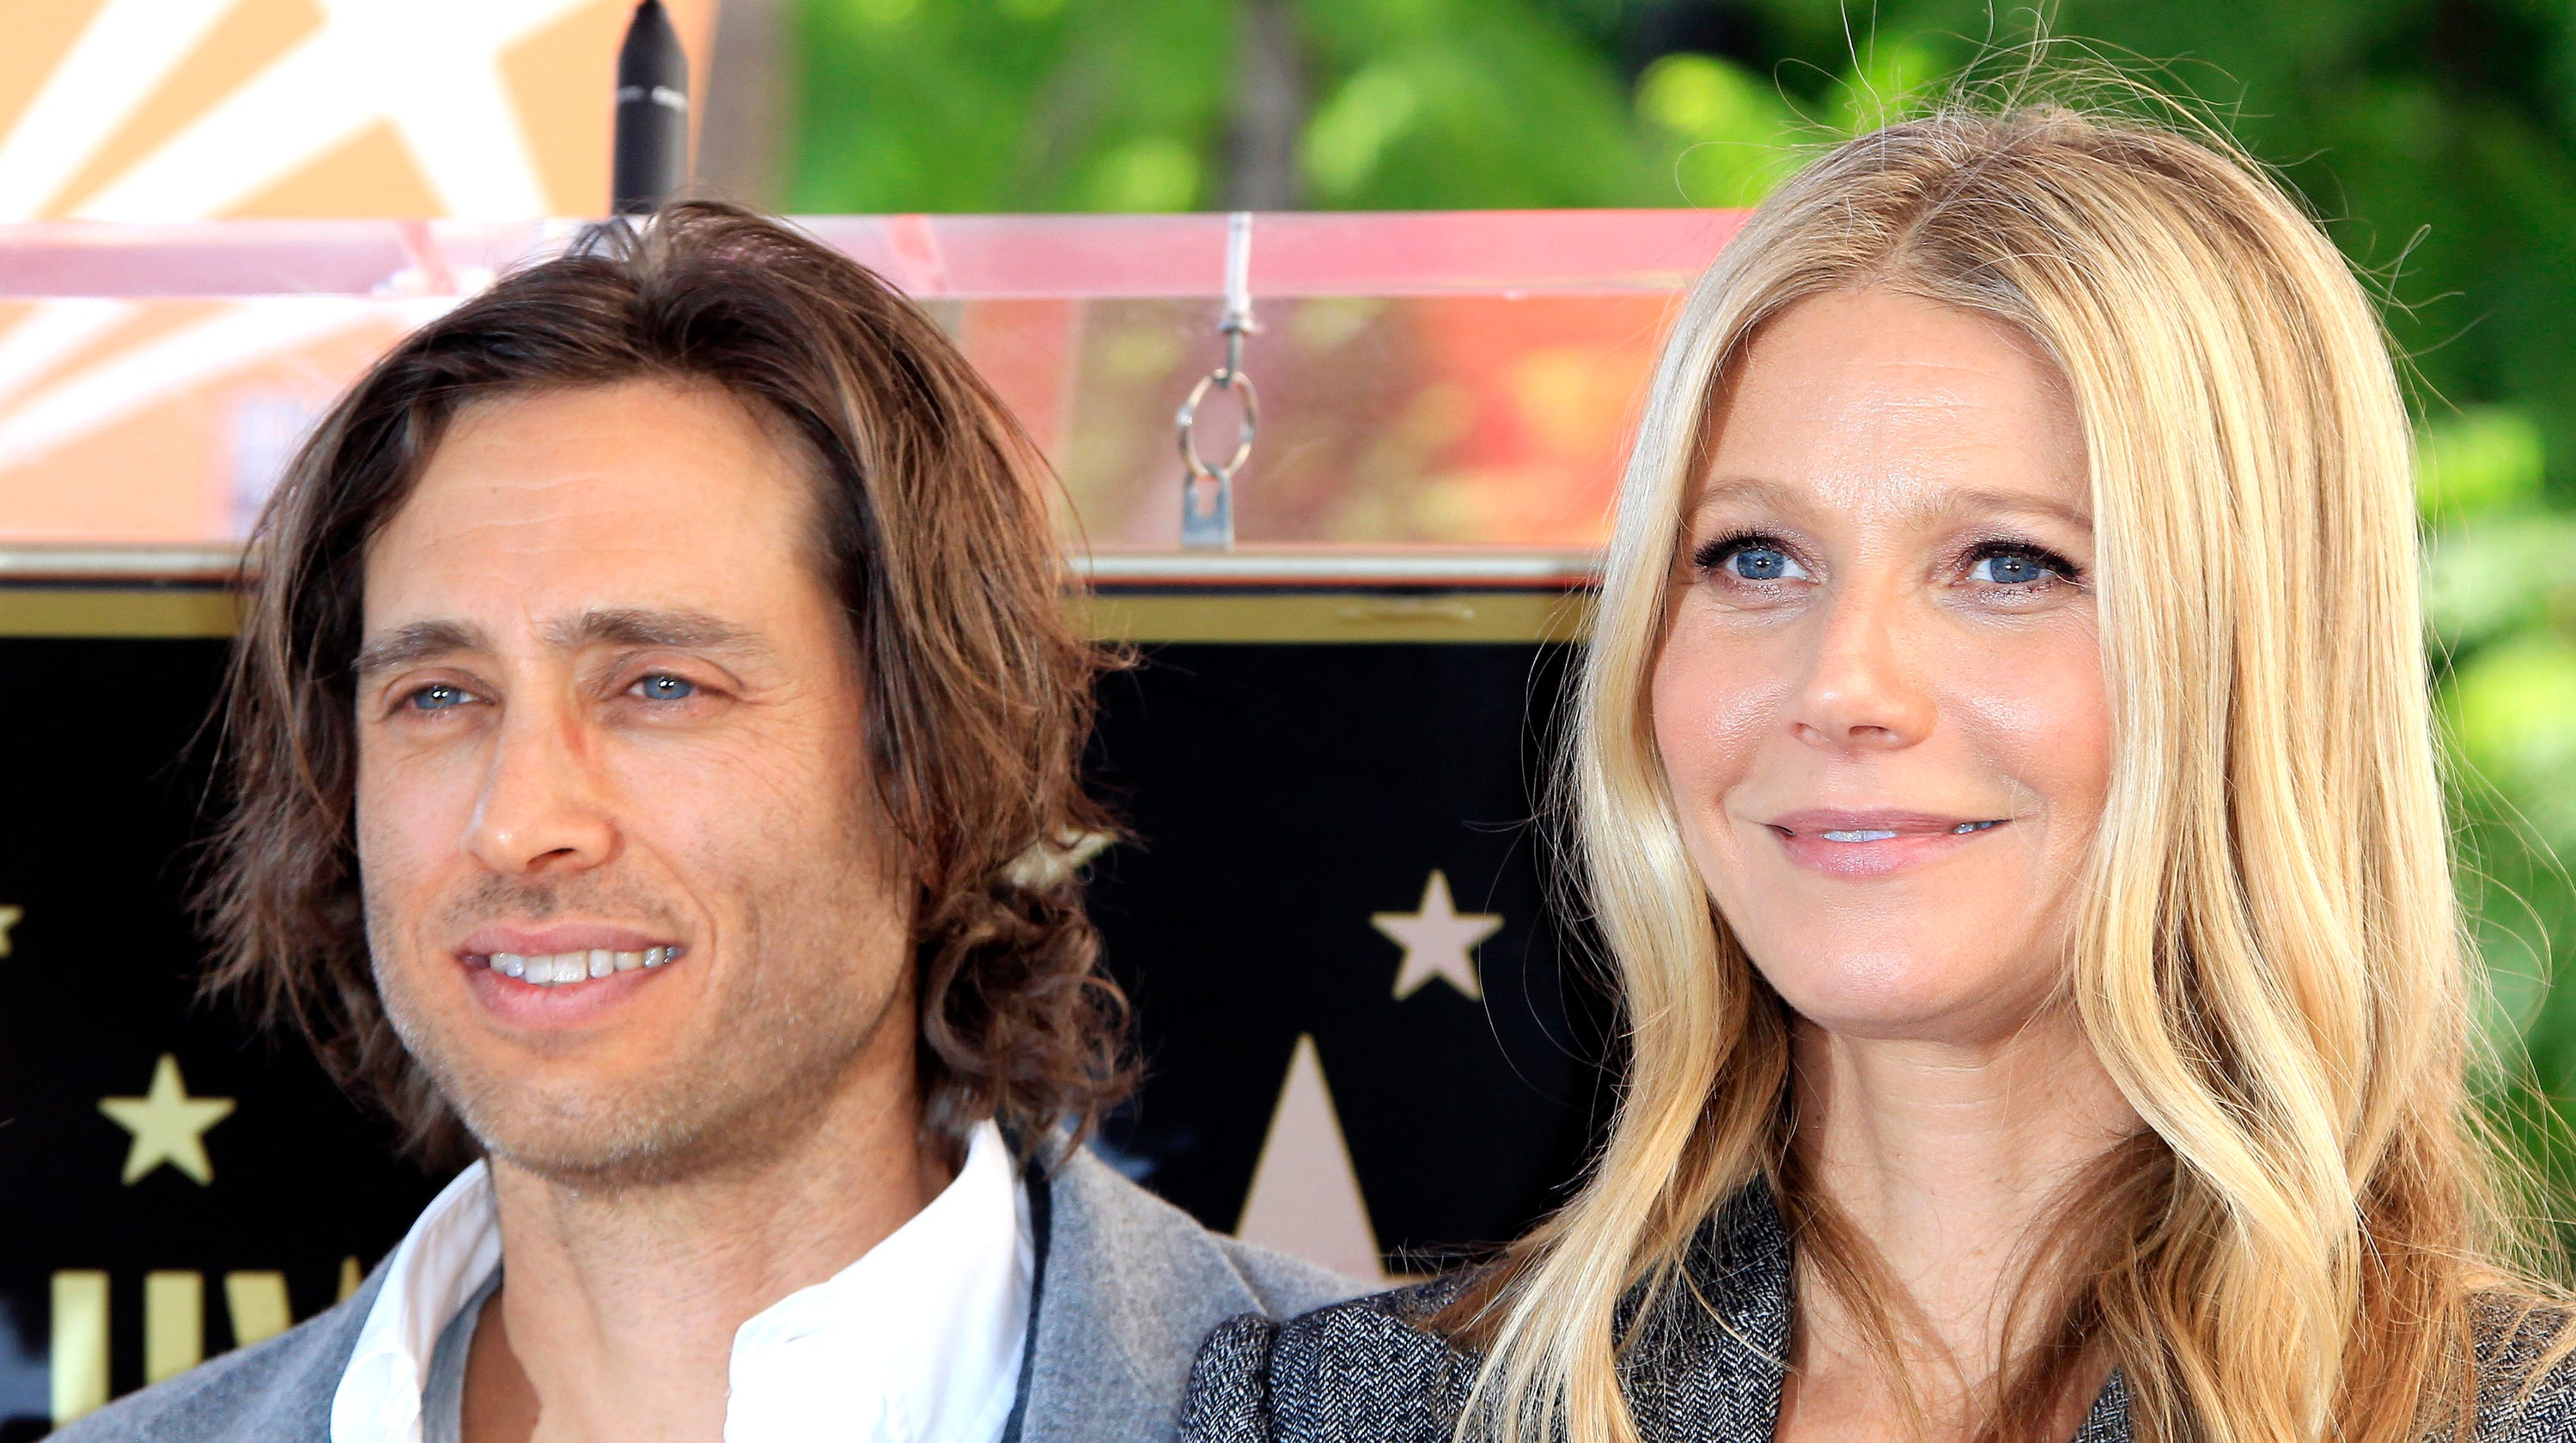 Gwyneth Paltrow, Brad Falchuk honeymoon with her ex, Chris Martin